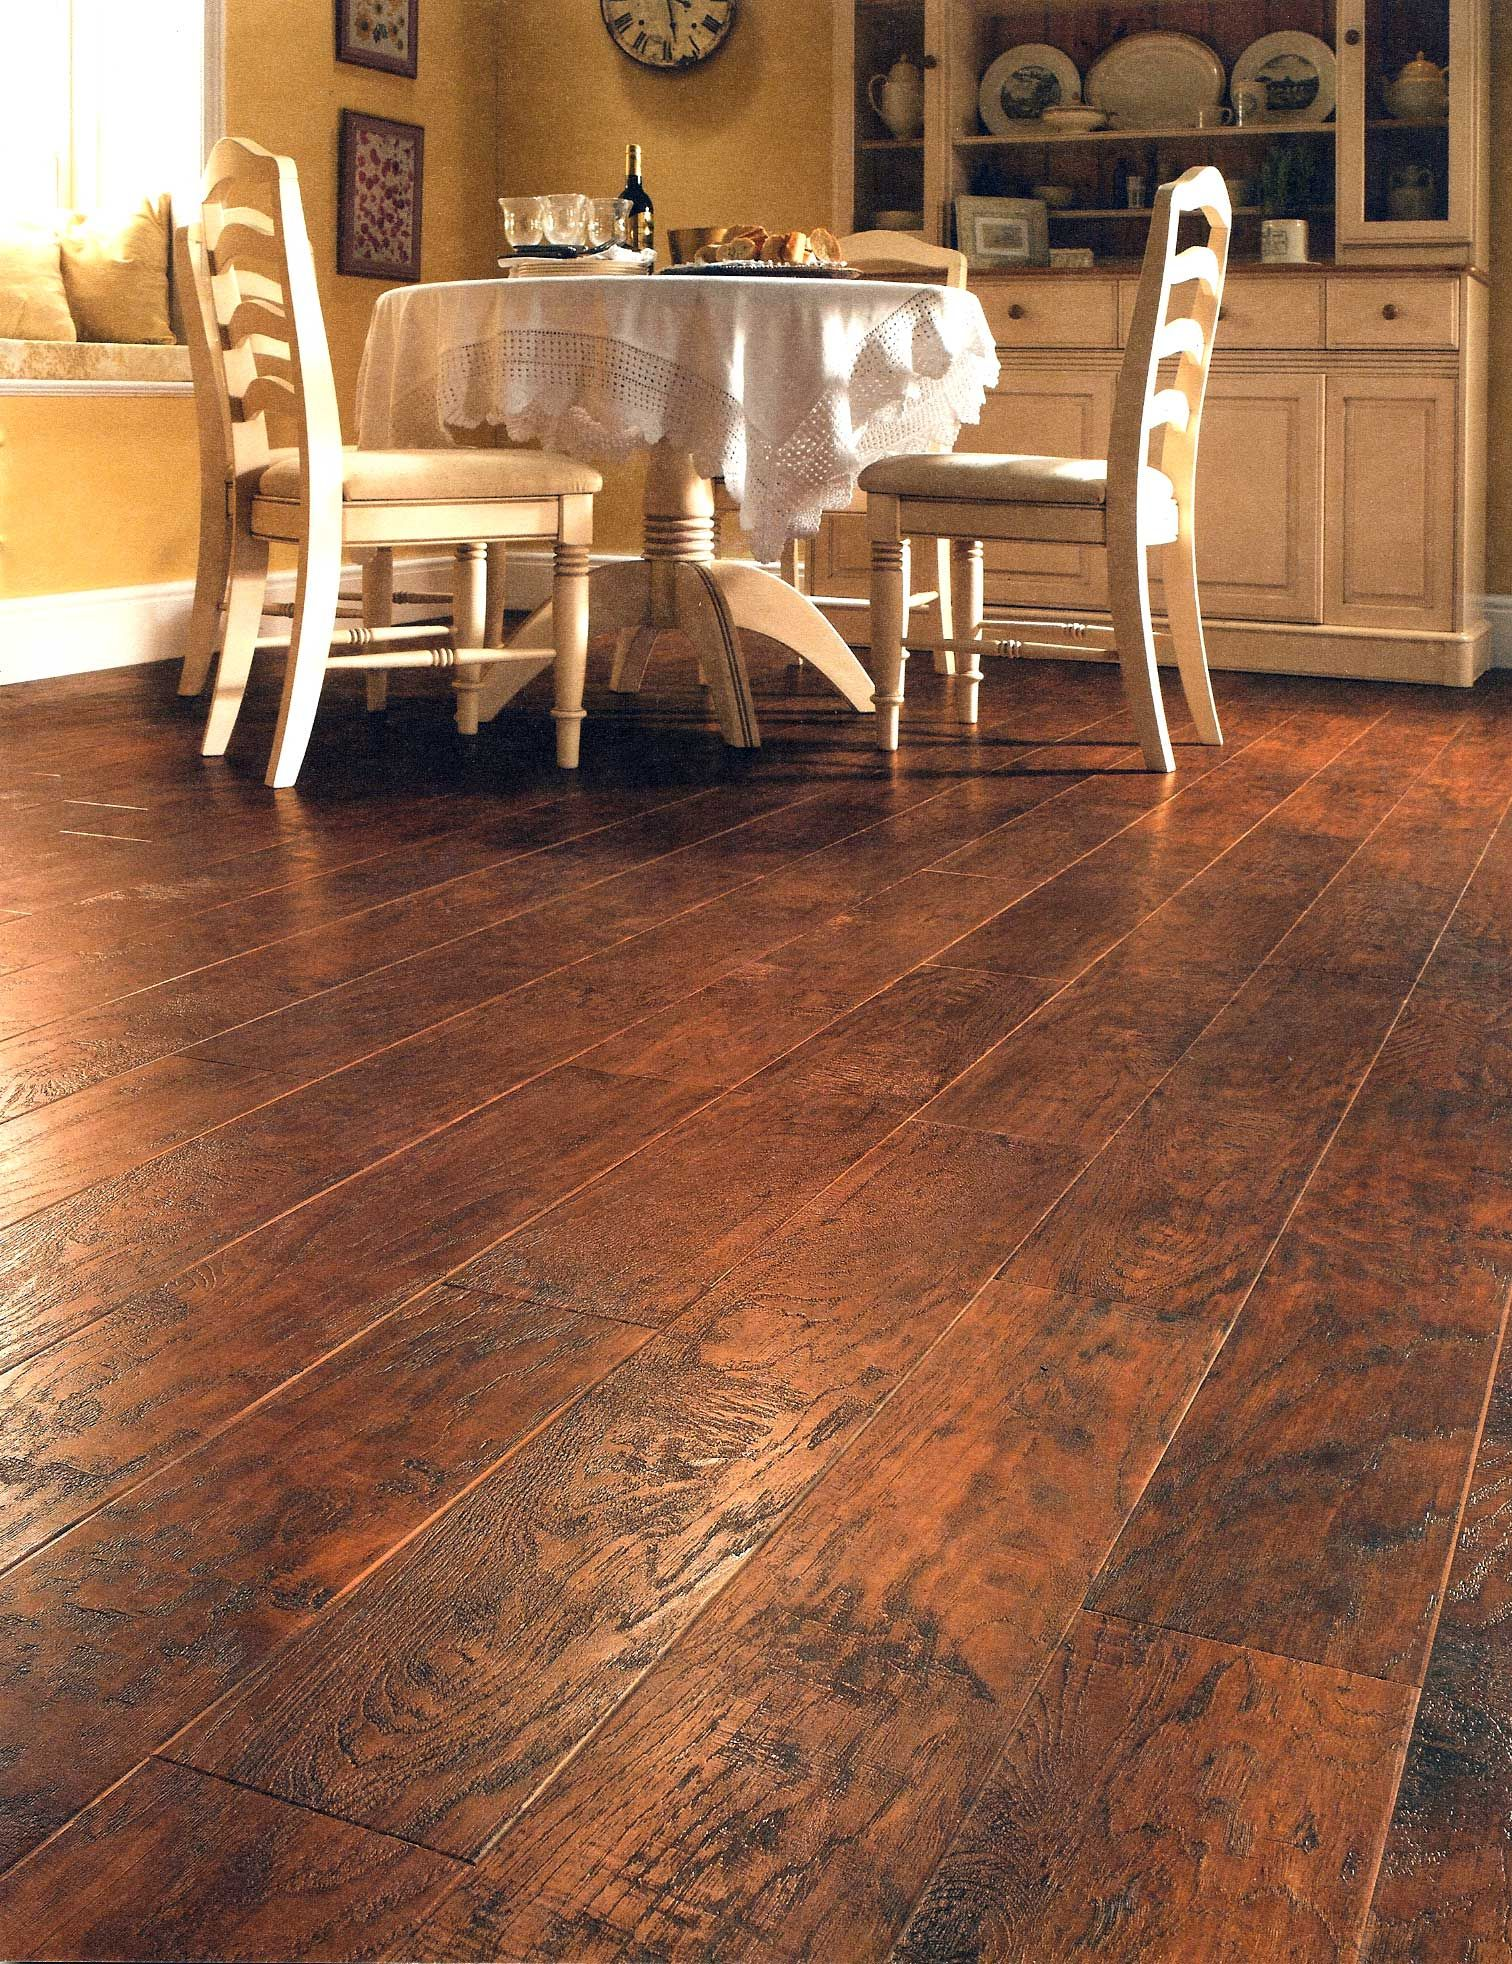 Vinyl Floor In Kitchen Vinyl Flooring Edgemont Floors Is Dedicated To Make Your Home